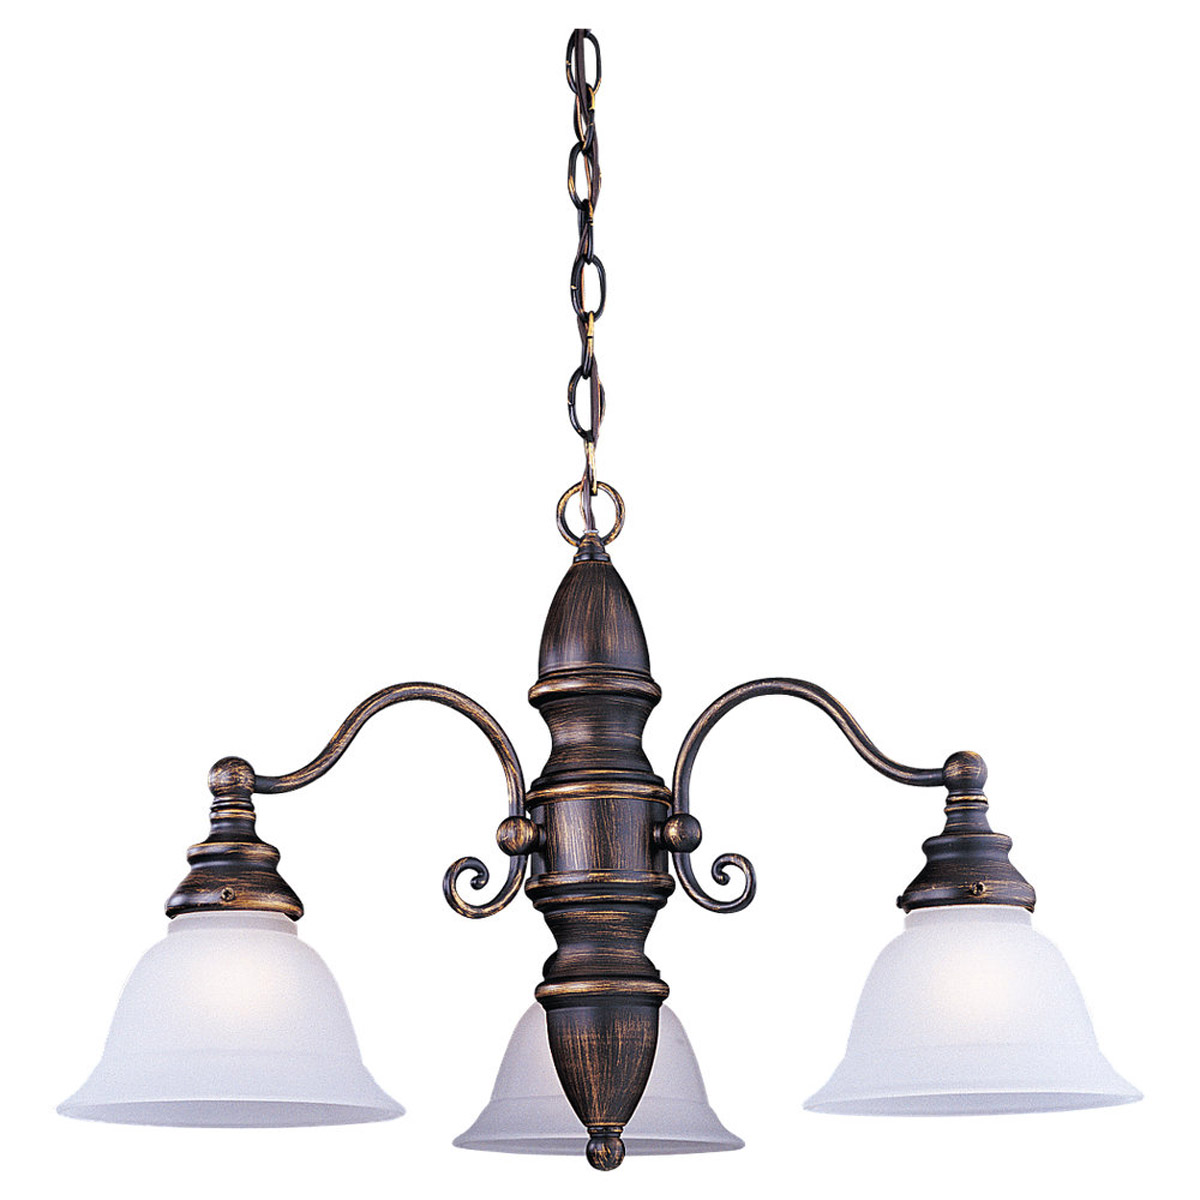 Sea Gull Lighting Canterbury 3 Light Chandelier in Antique Bronze 31050-71 photo